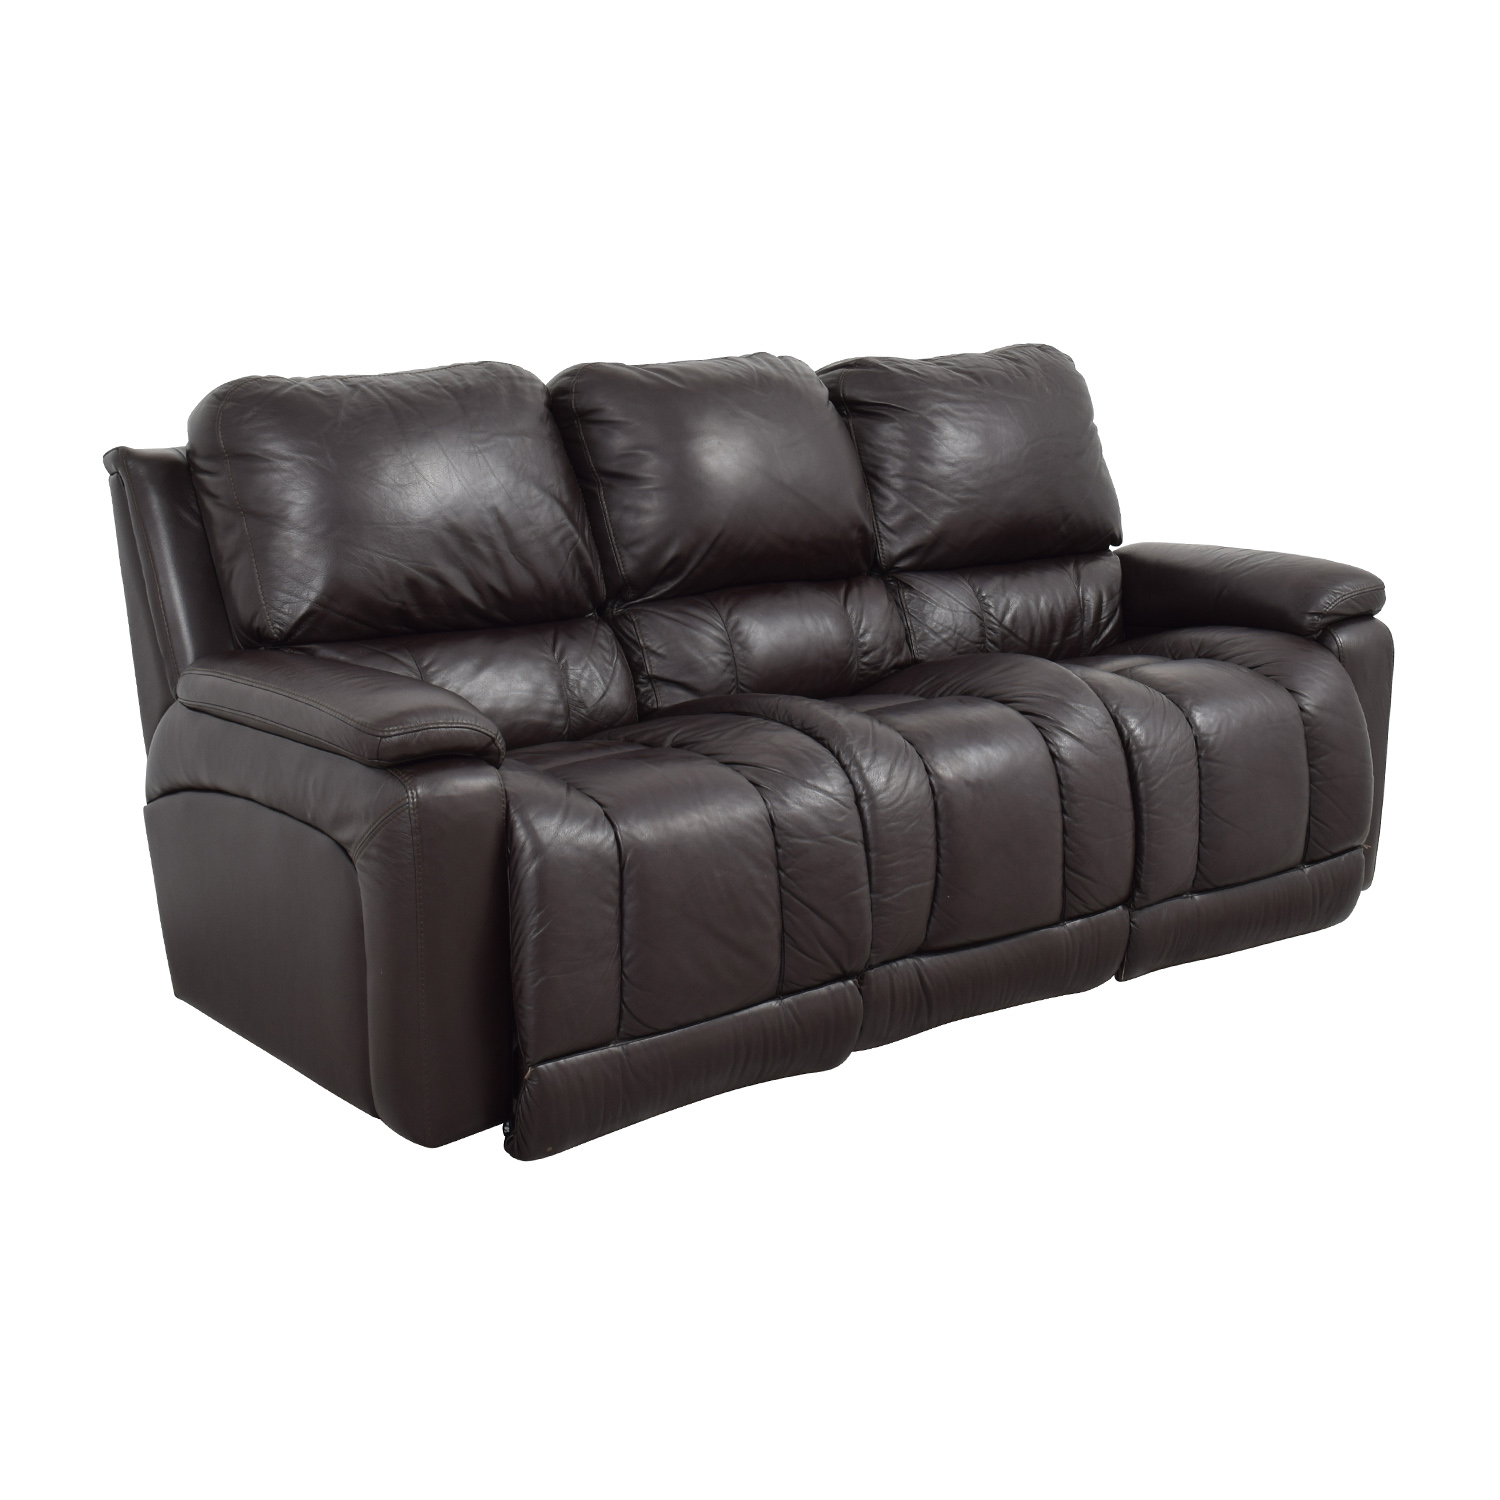 77 OFF  LaZBoy LaZBoy Brown Leather Reclining Sofa  Sofas